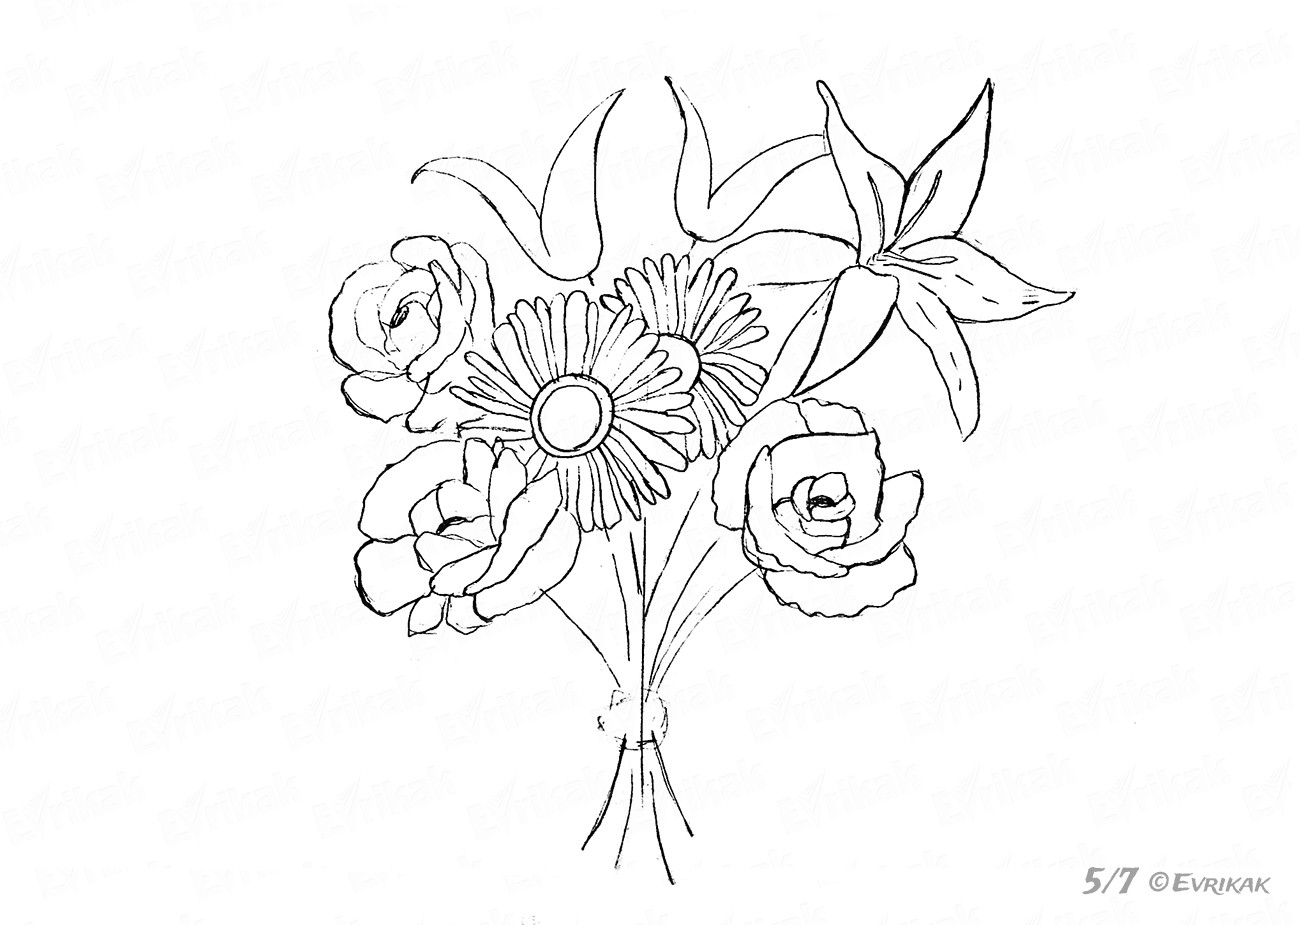 how to draw a bouquet of flowers how to draw a simple rose bush bunch of flowers rose draw a how of bouquet to flowers